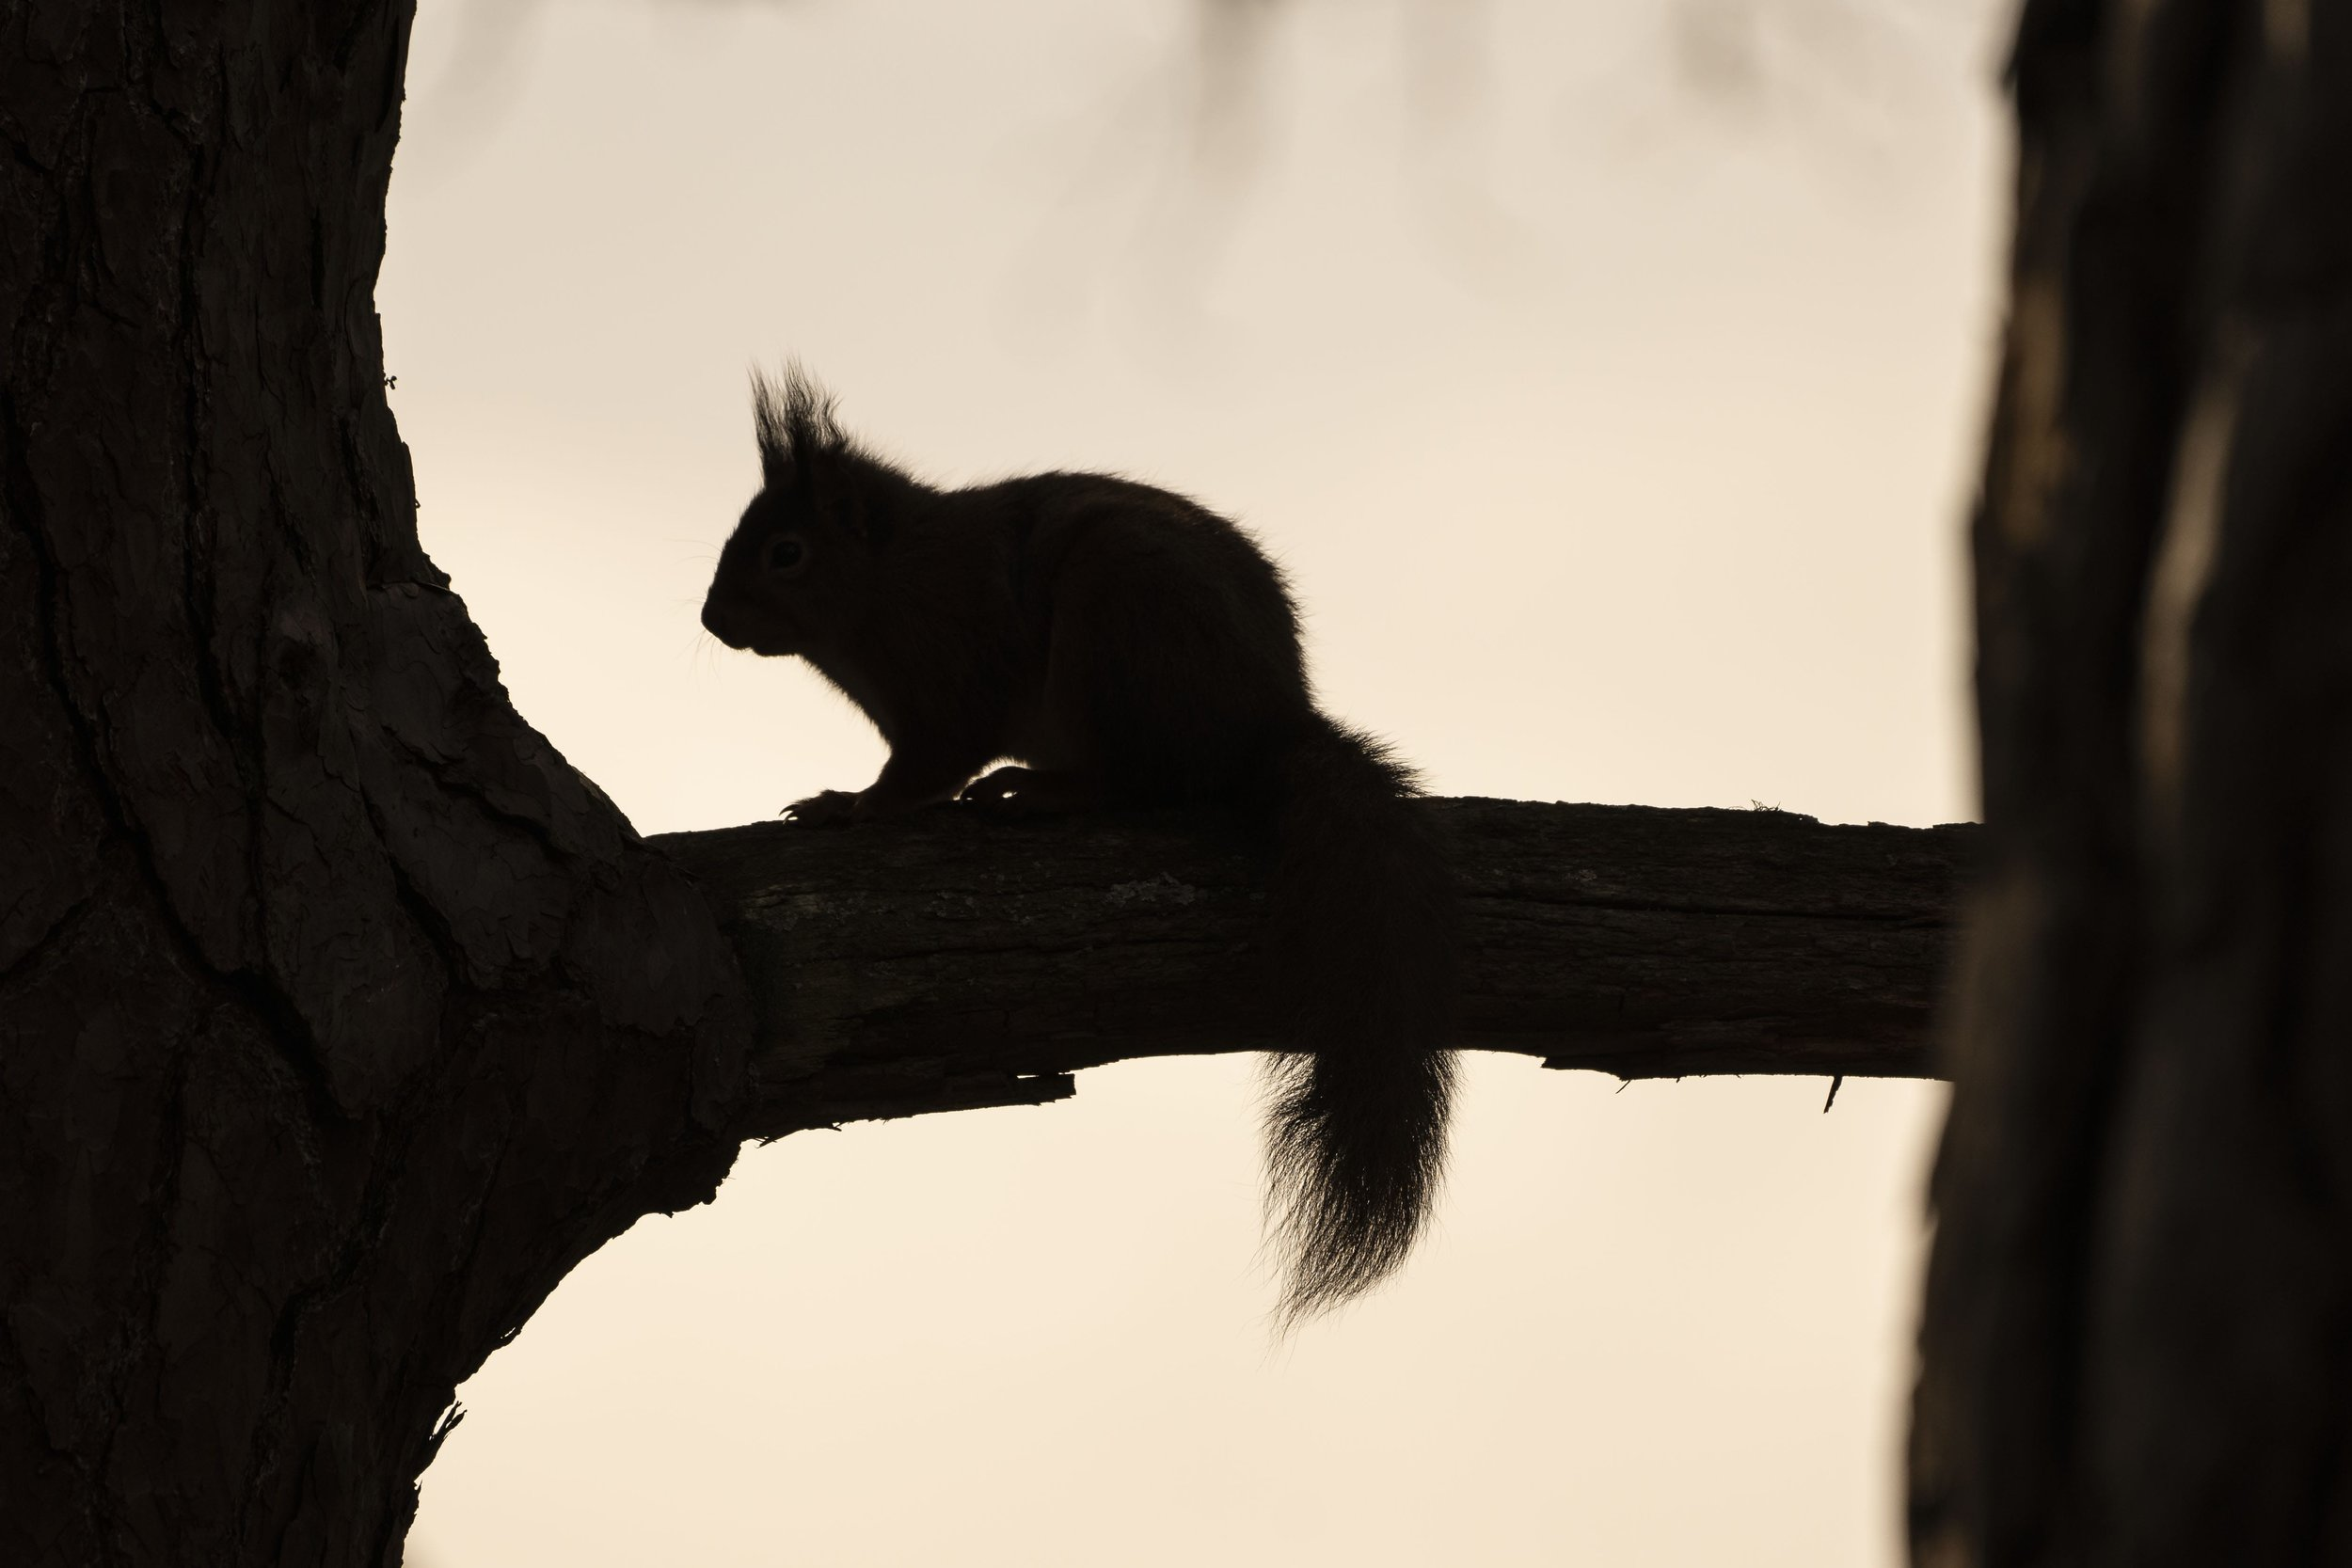 Red Squirrel Photography Conservation Reintroduction Silhouette